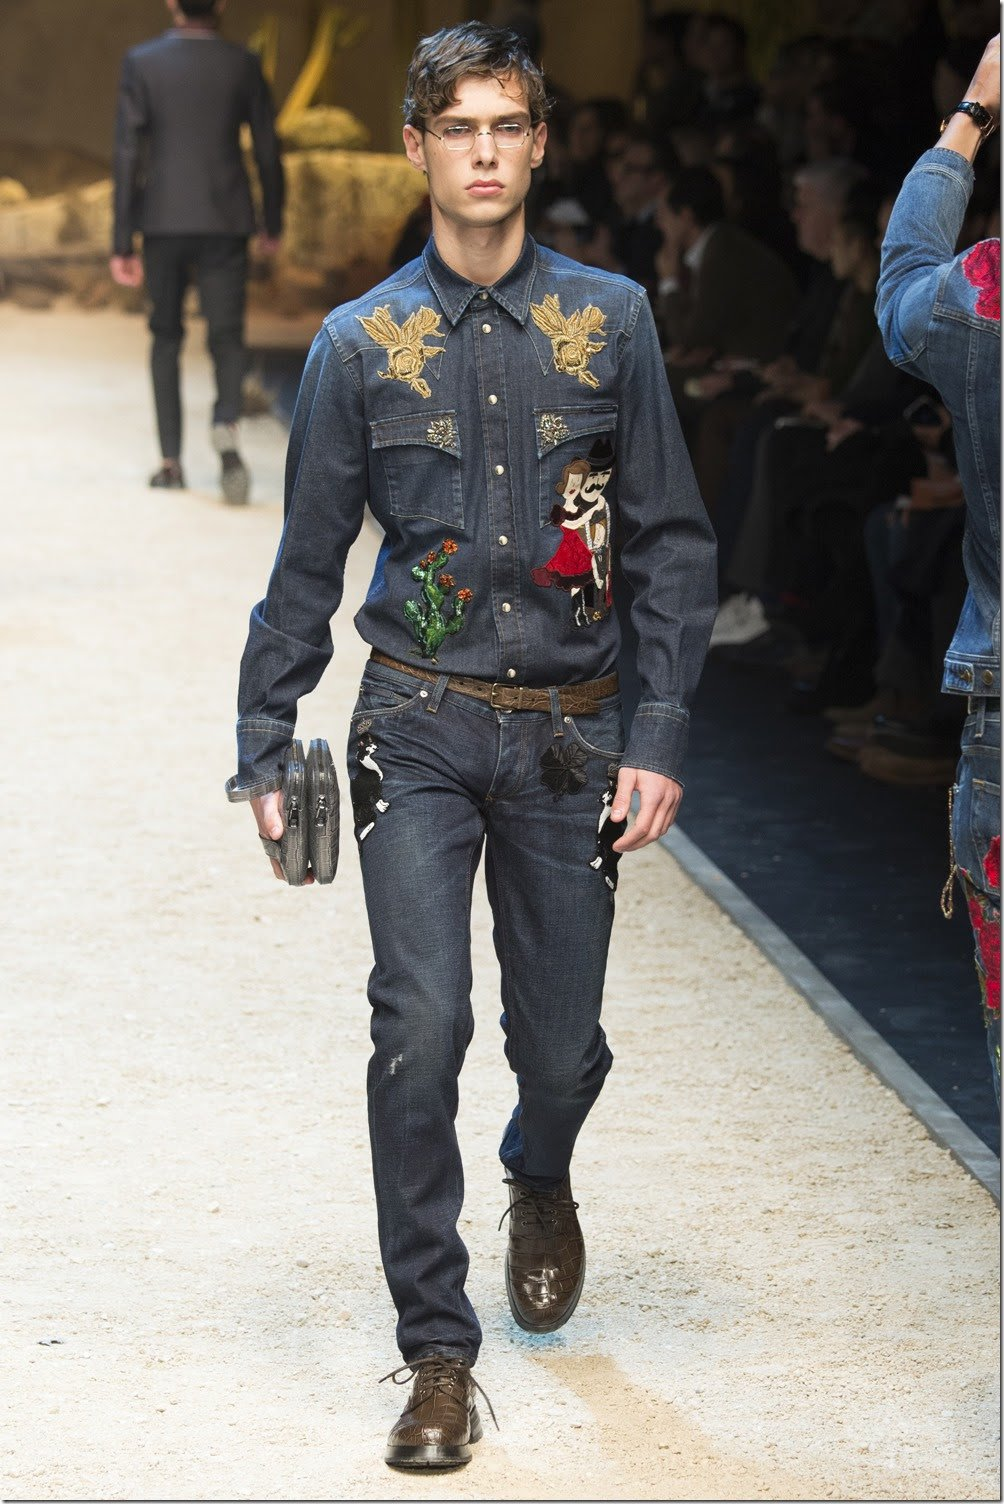 stil western dolce and gabanna